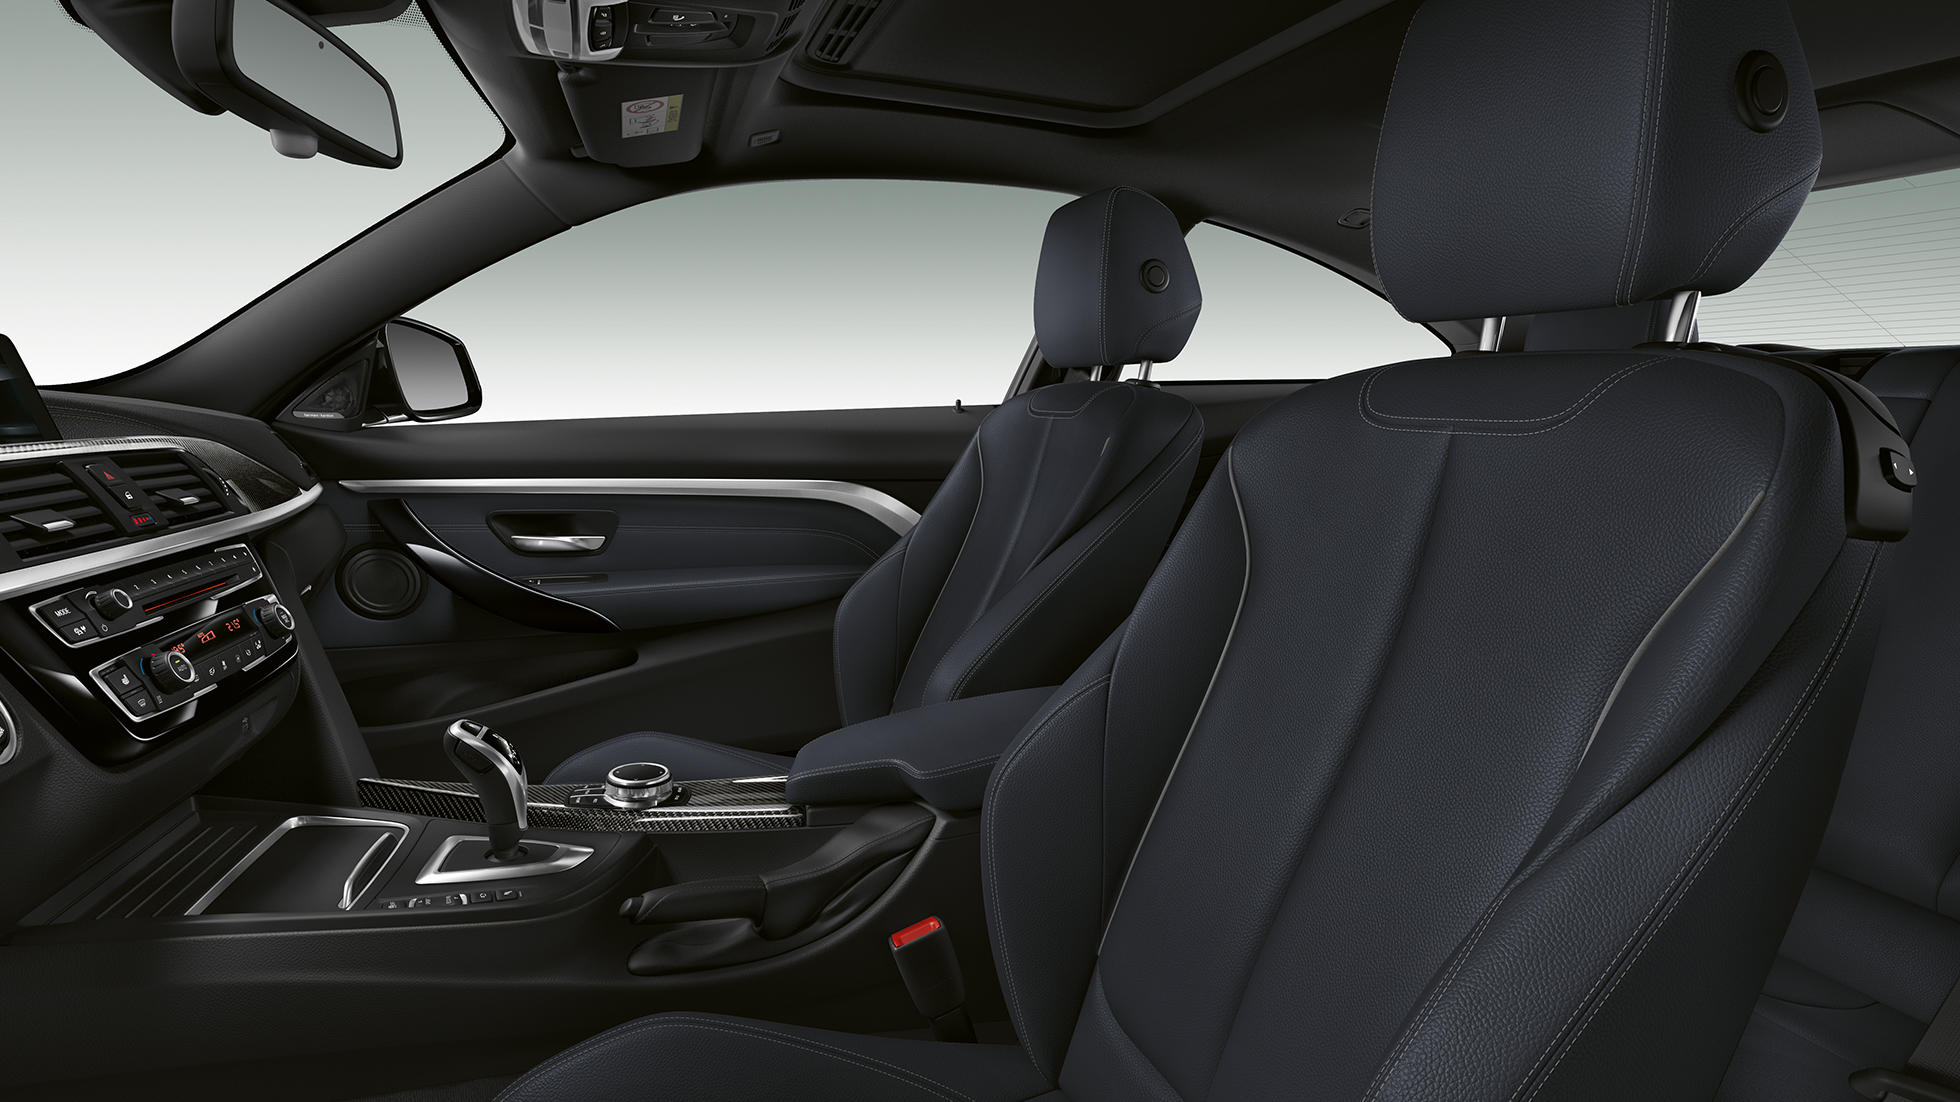 BMW 4 Series Coupé, Model M Sport interior